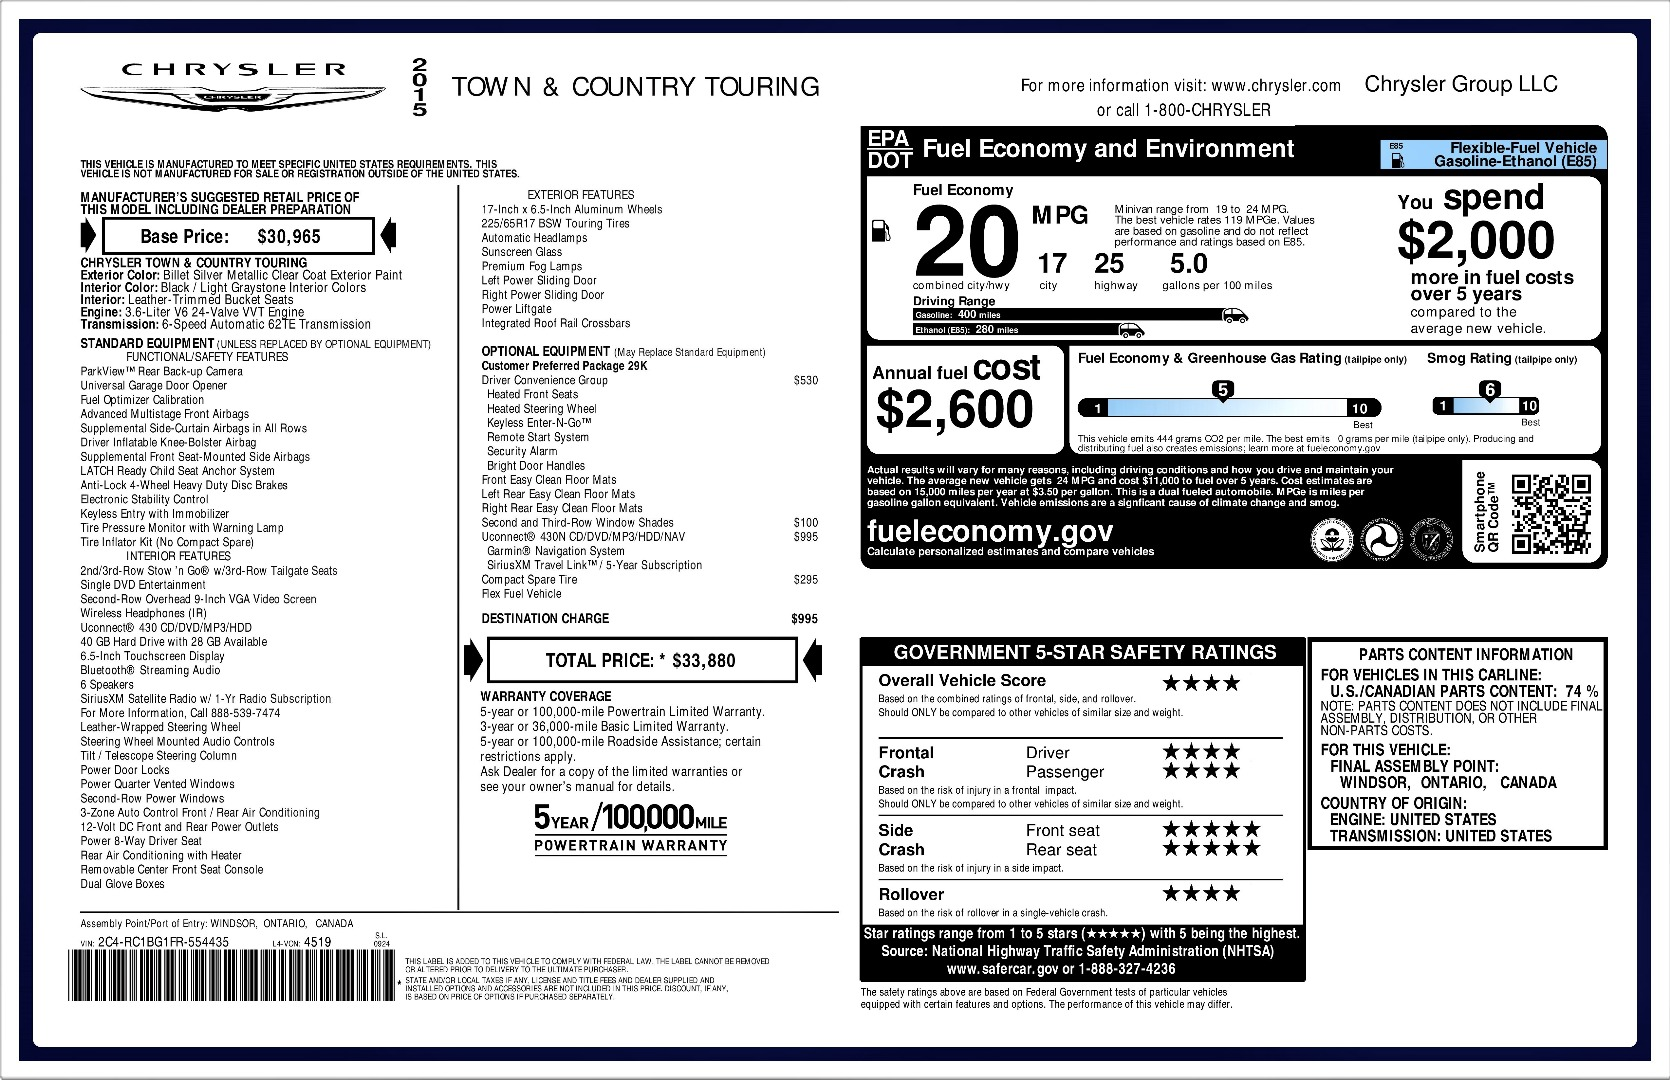 2015 CHRYSLER TOWN & COUNTRY Printer Friendly Flyer.